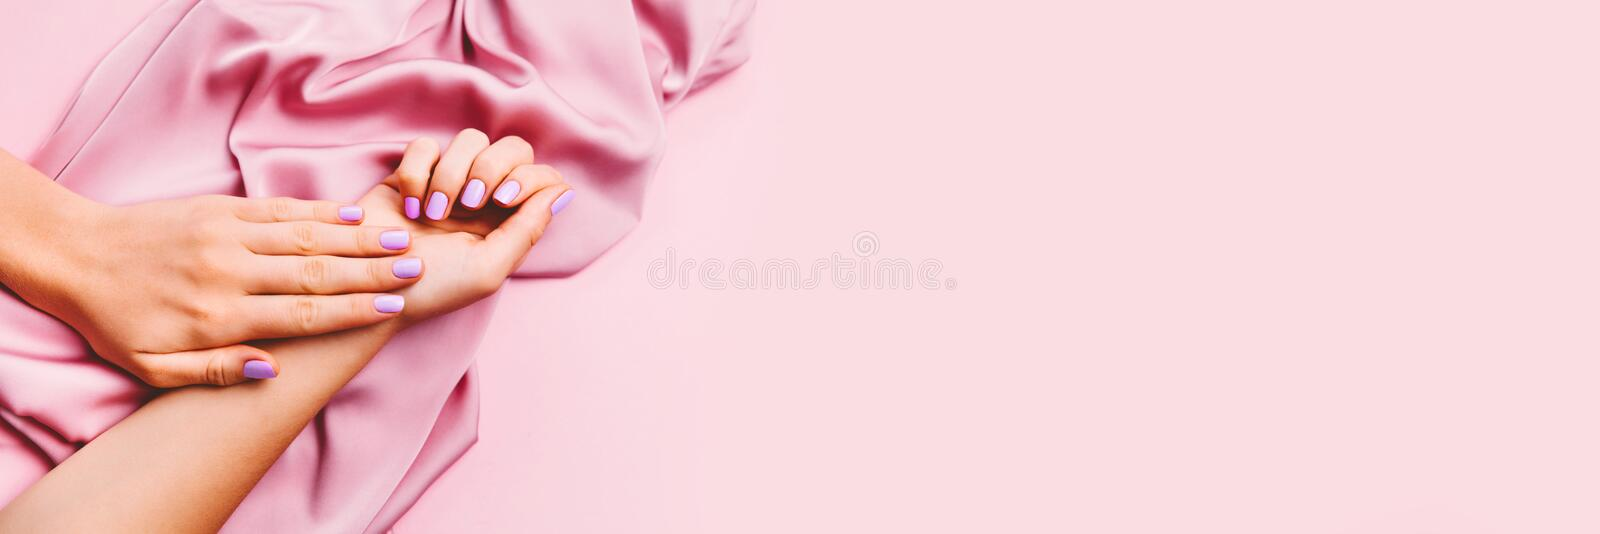 Beautiful woman manicure on creative pink background with silk fabric. Minimalist trend. royalty free stock images